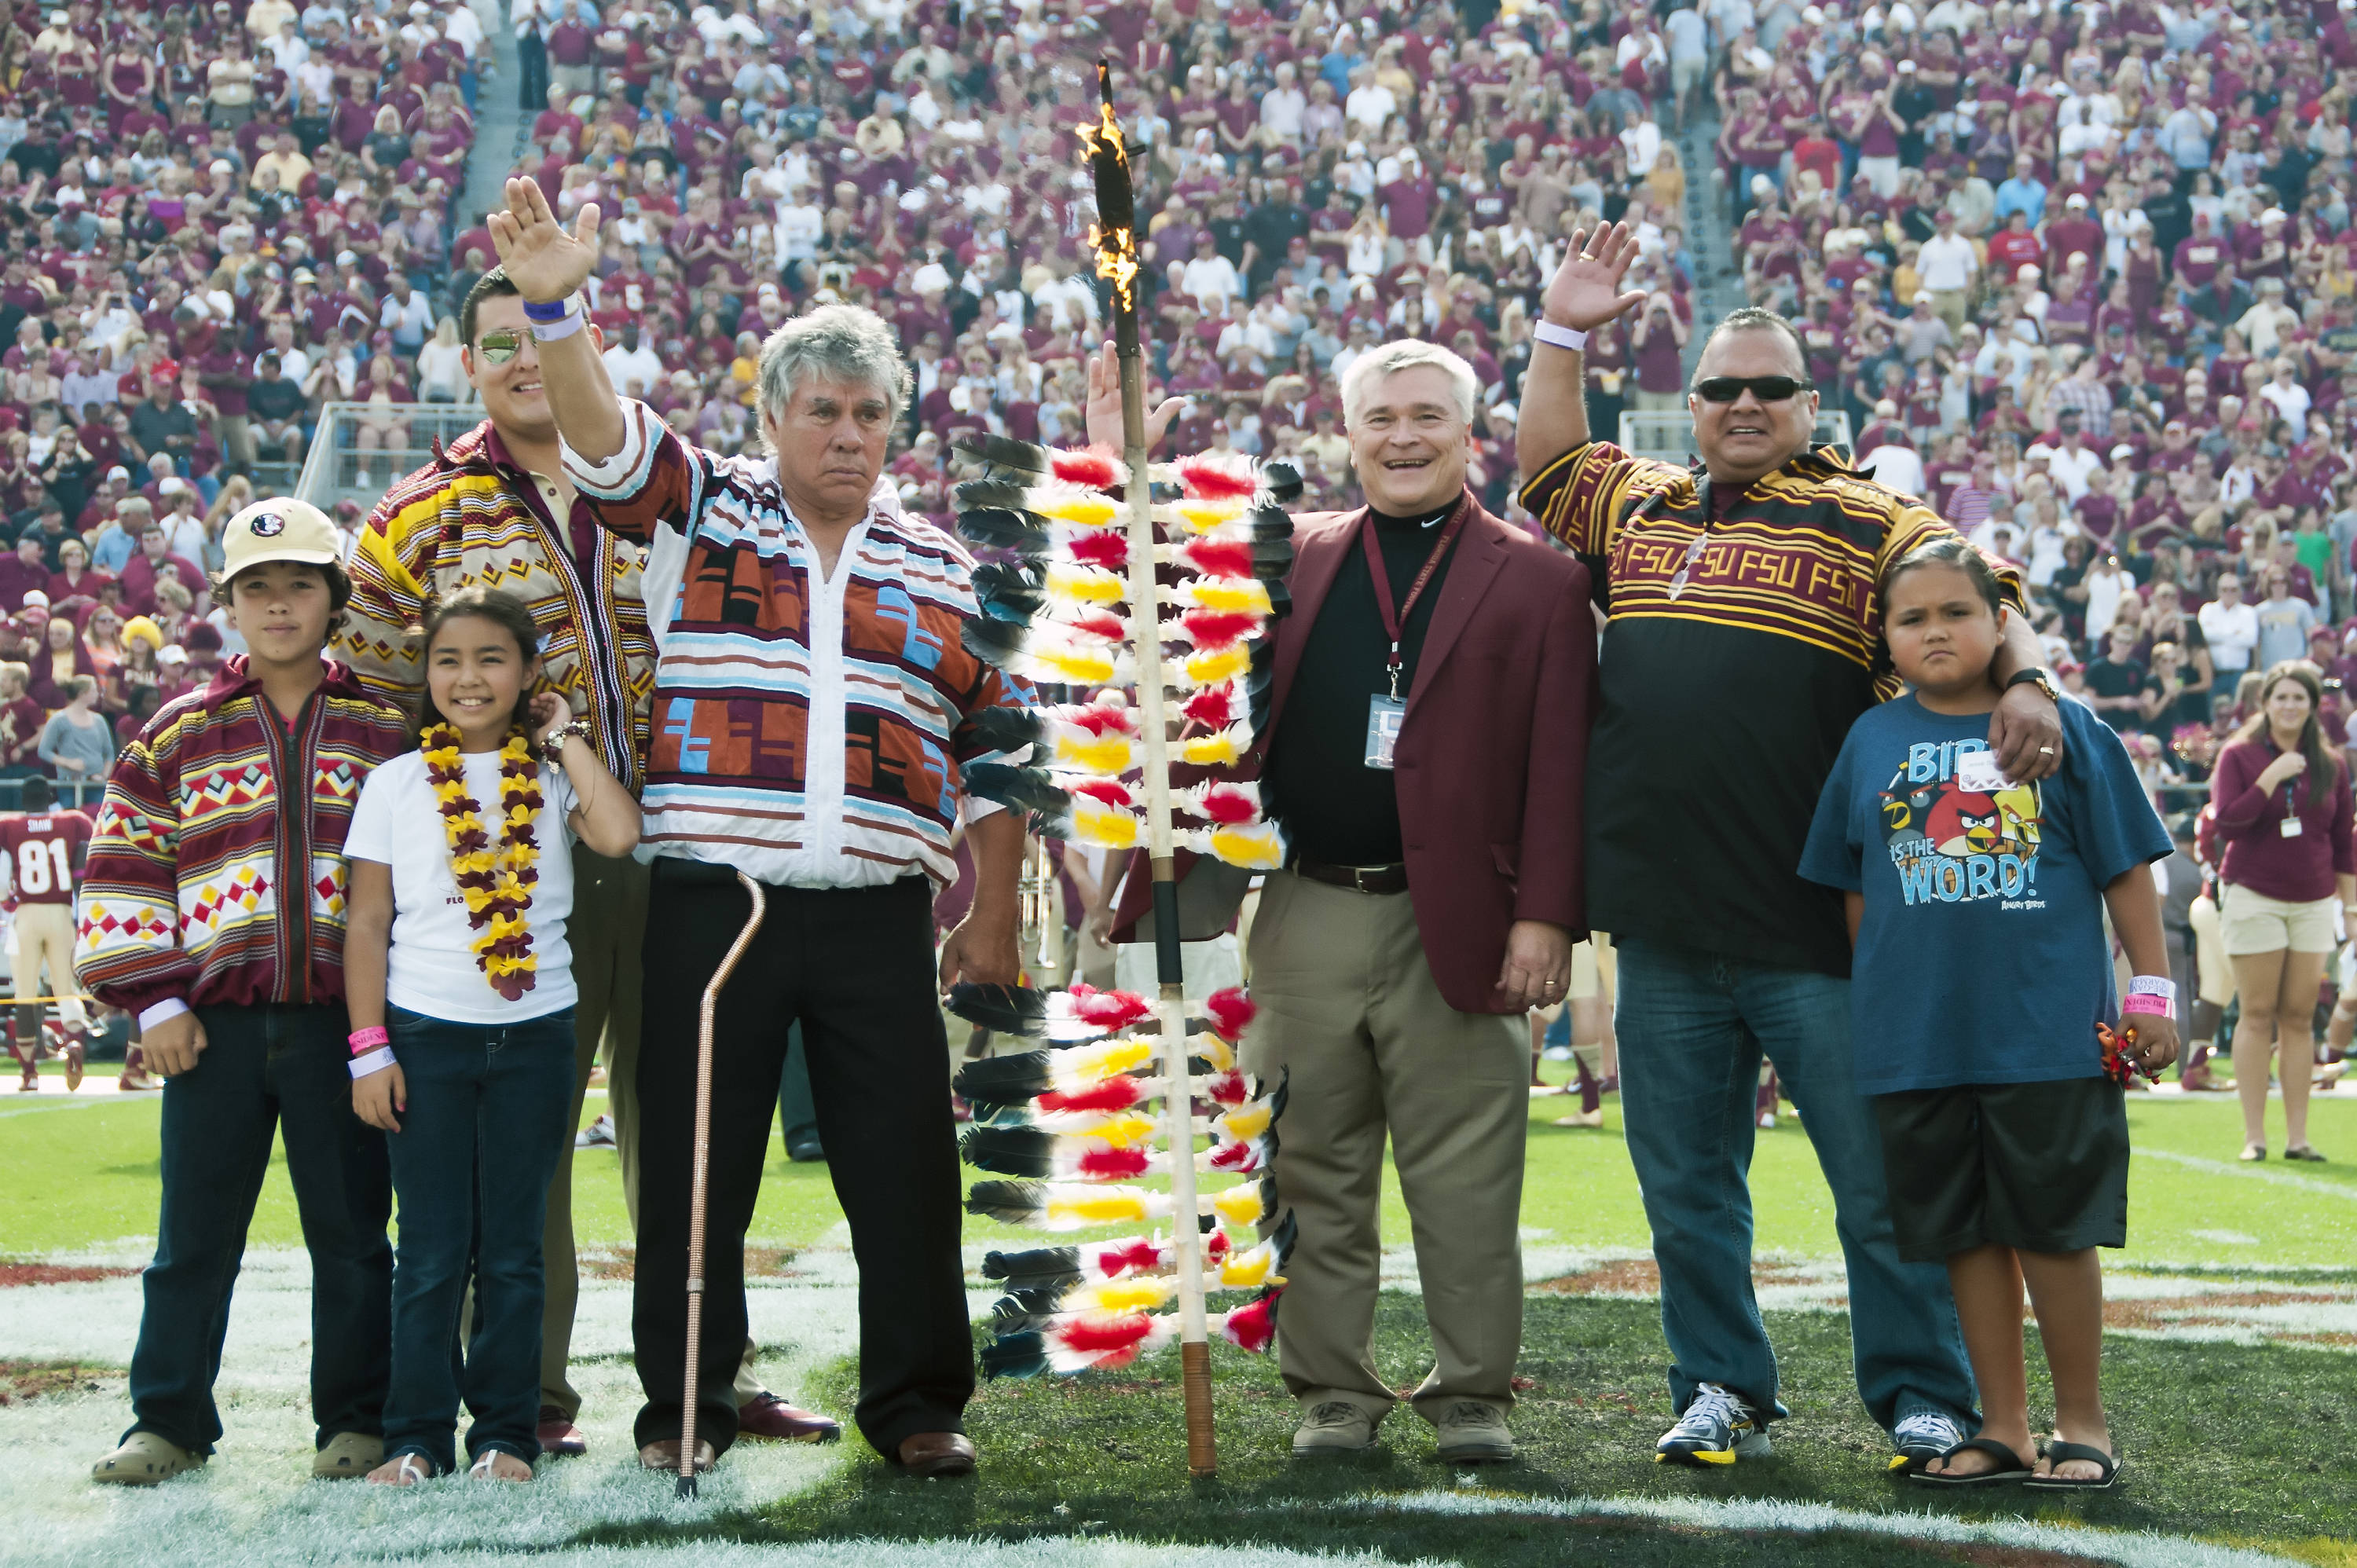 Chief Billie, members of the Seminole tribe and Dr. Alex Barron at midfield